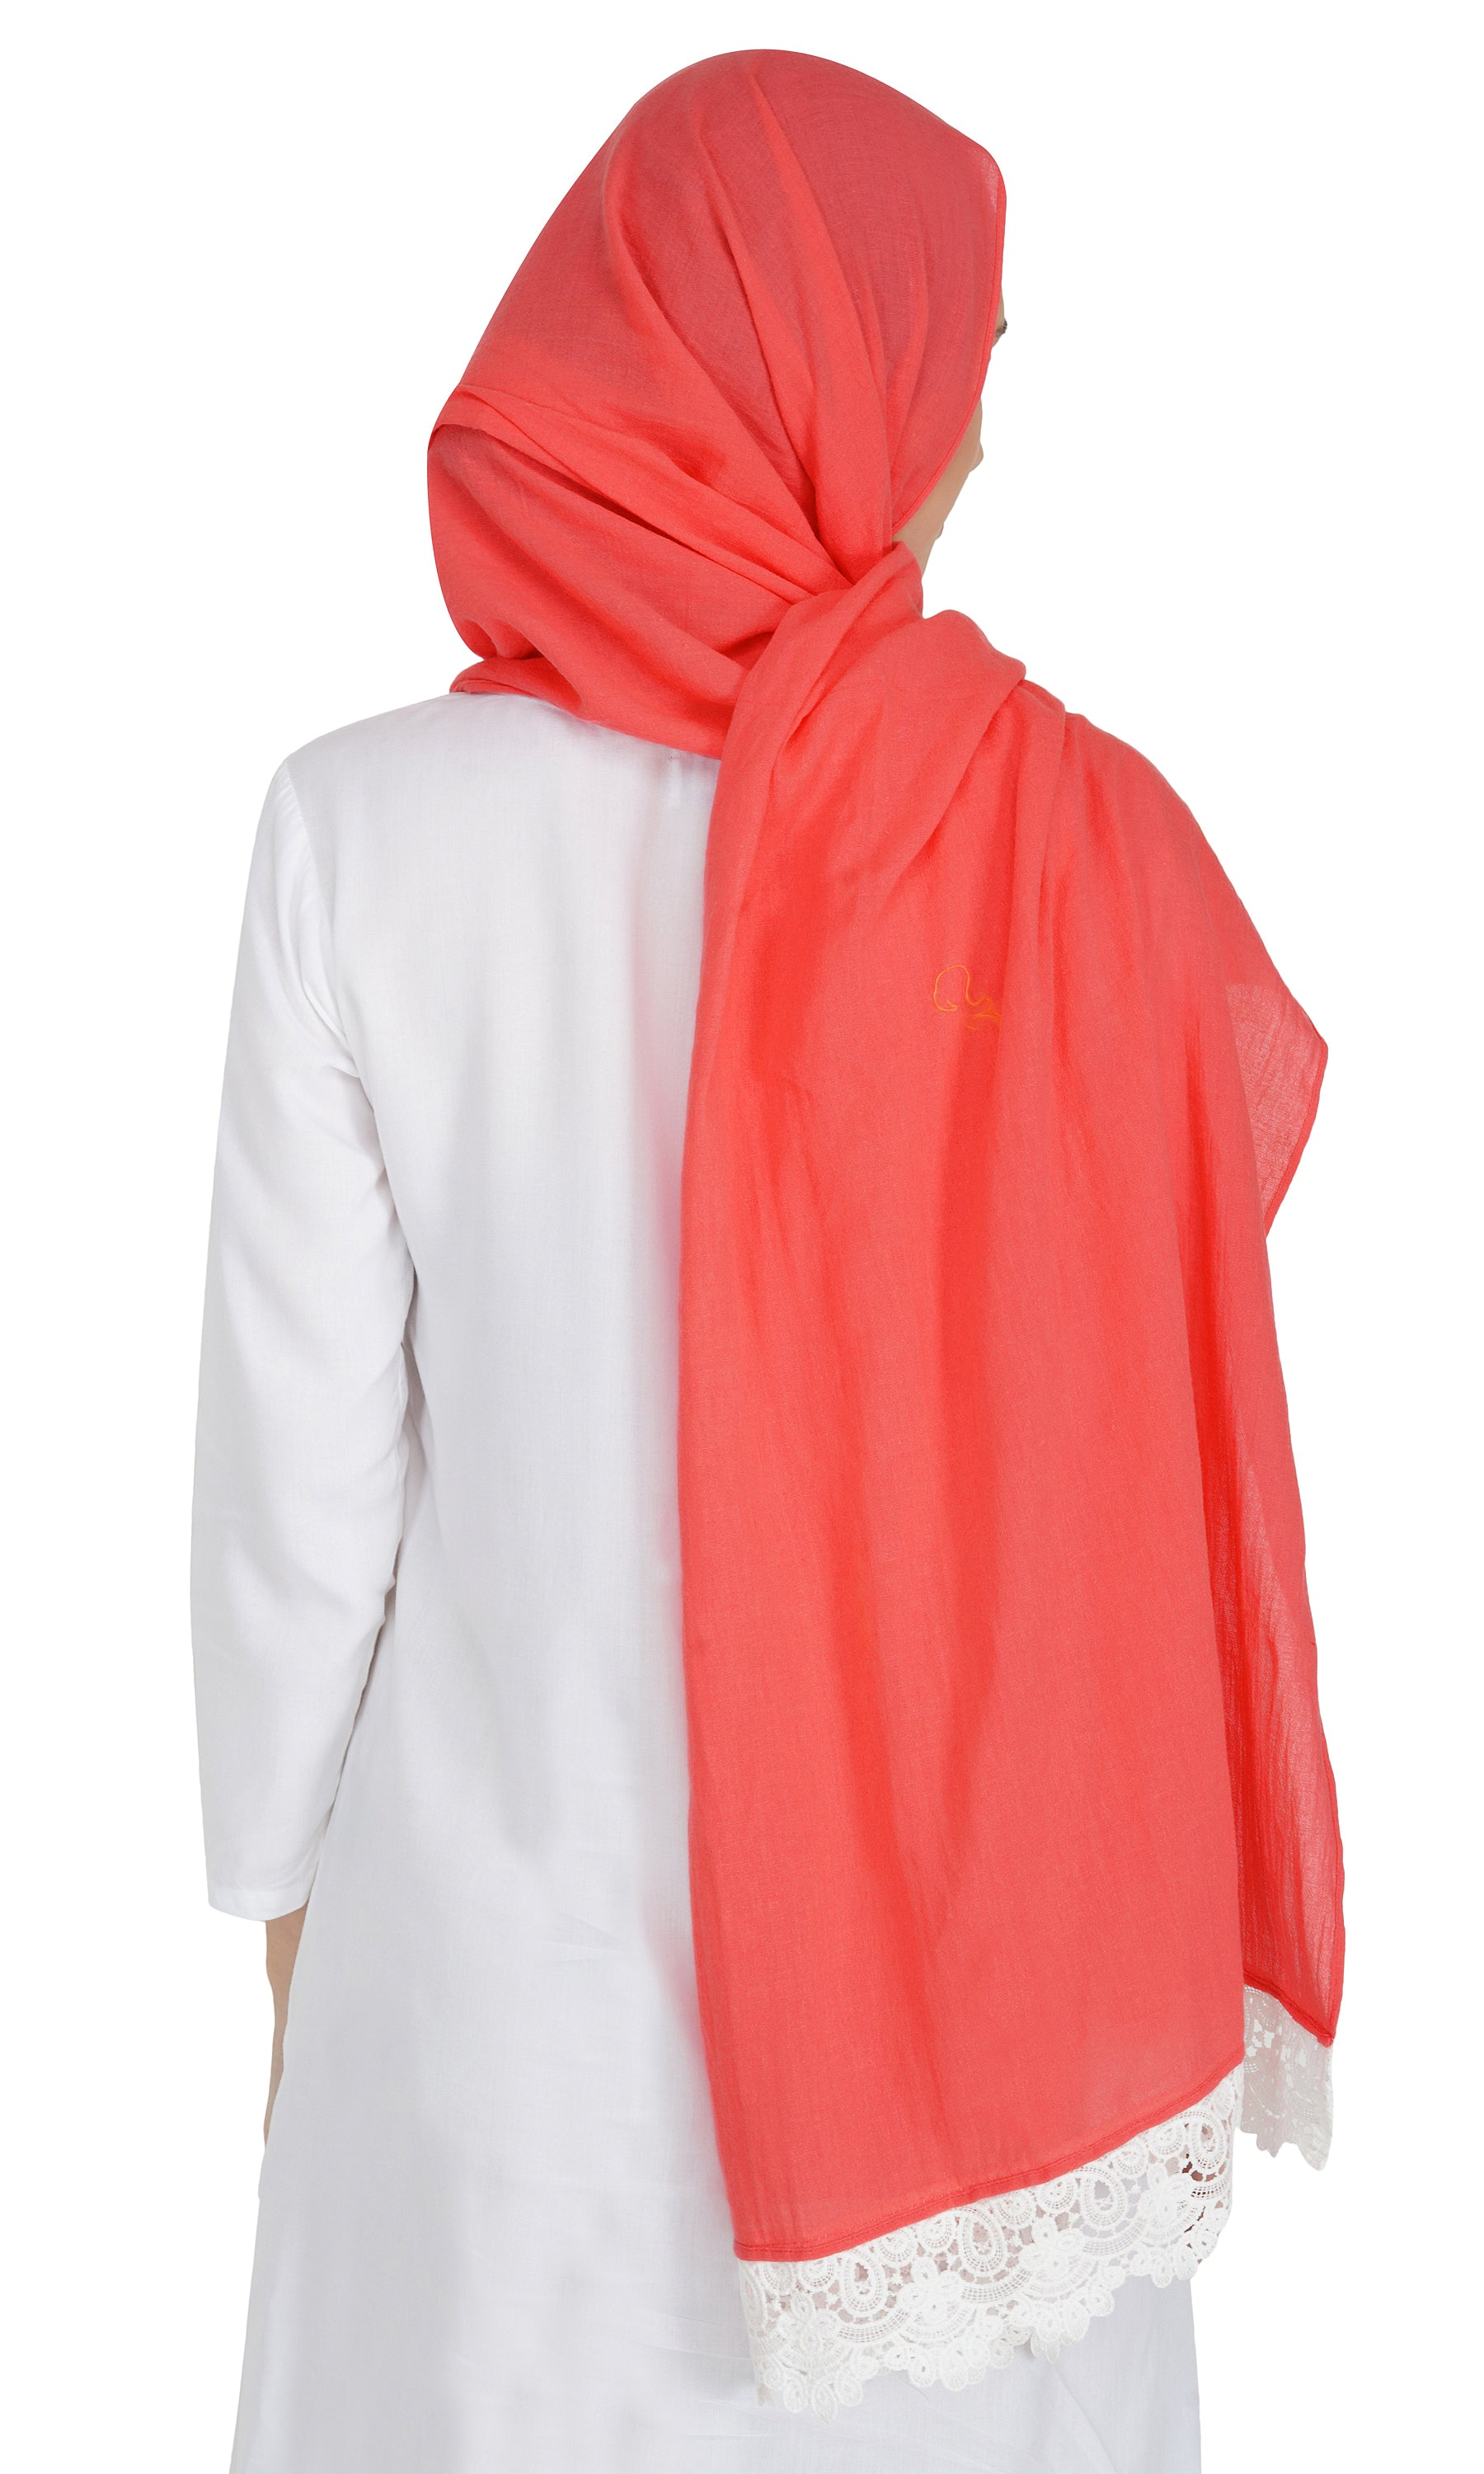 Ruqsar Laced Tangerine Stole